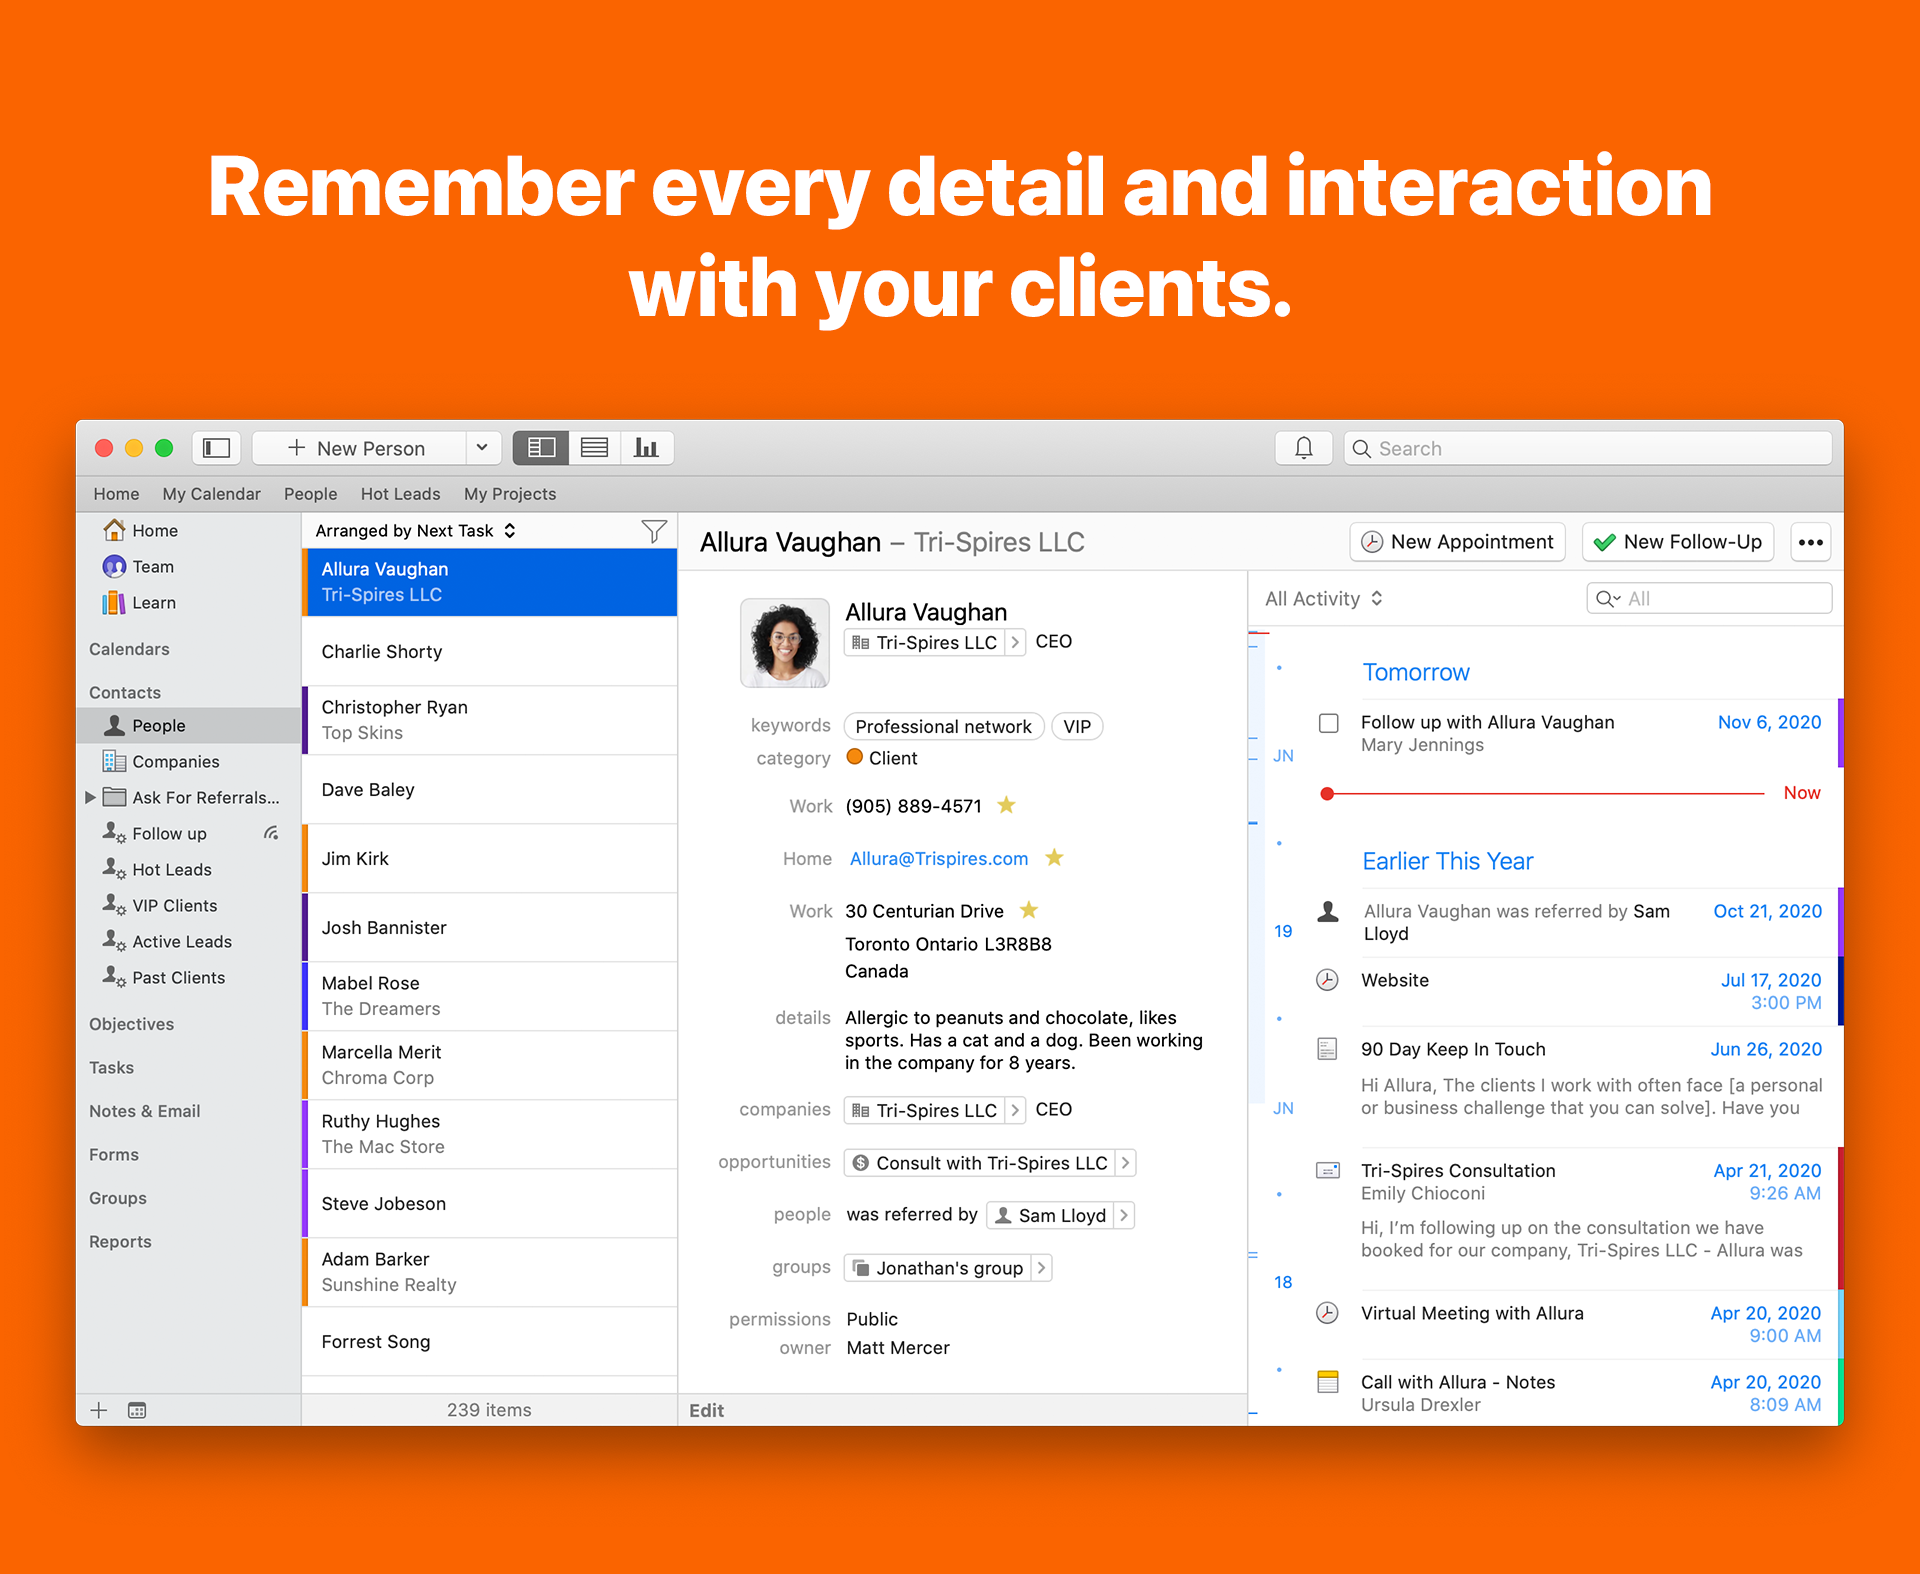 Daylite for Mac screenshot: Remember every detail and interaction with your clients